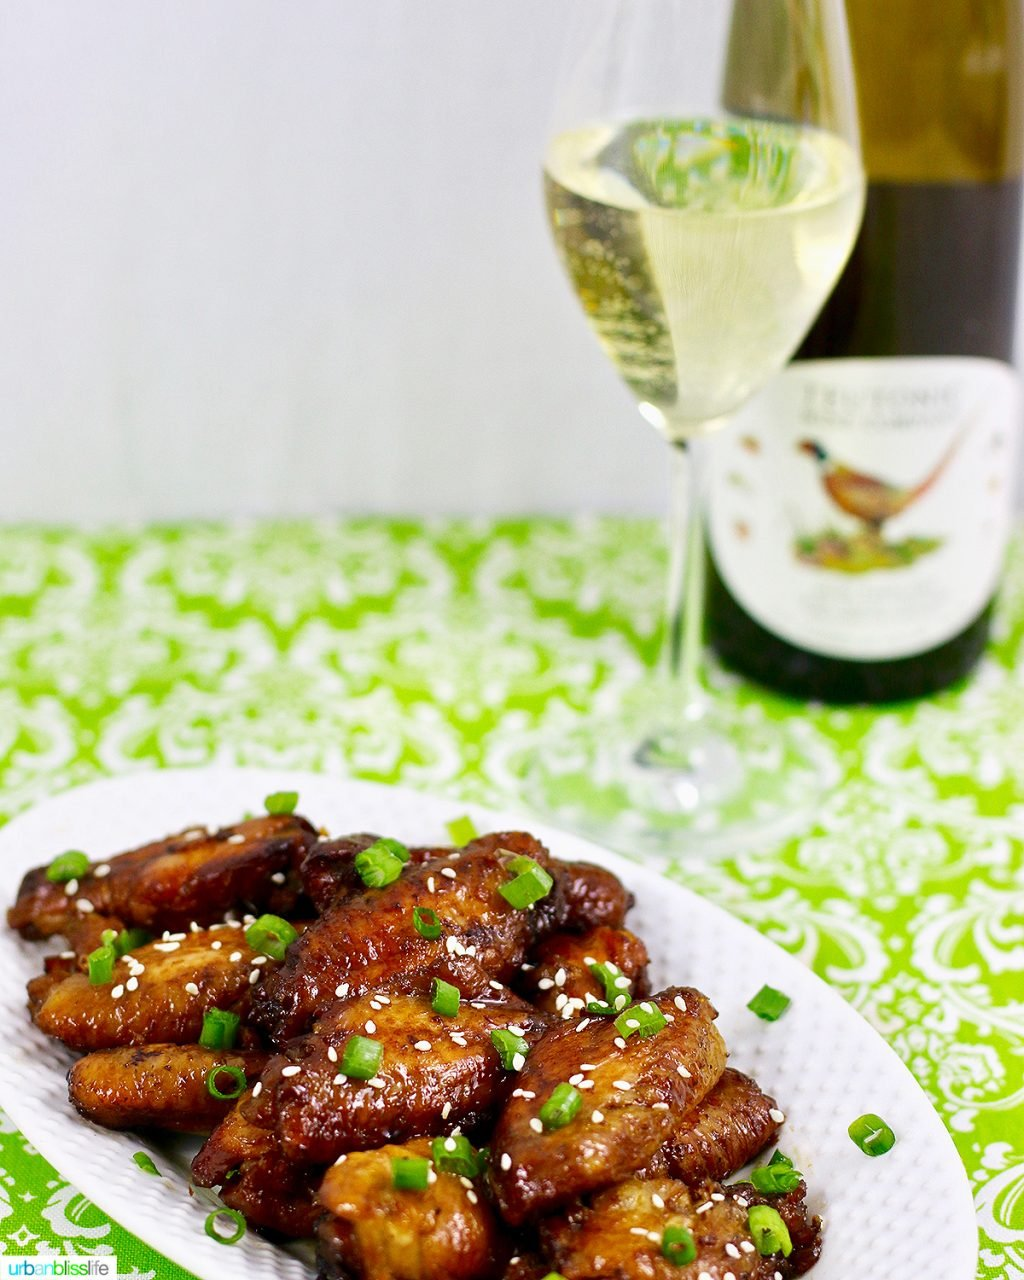 teriyaki chicken wings with a glass of Teutonic Riesling white wine